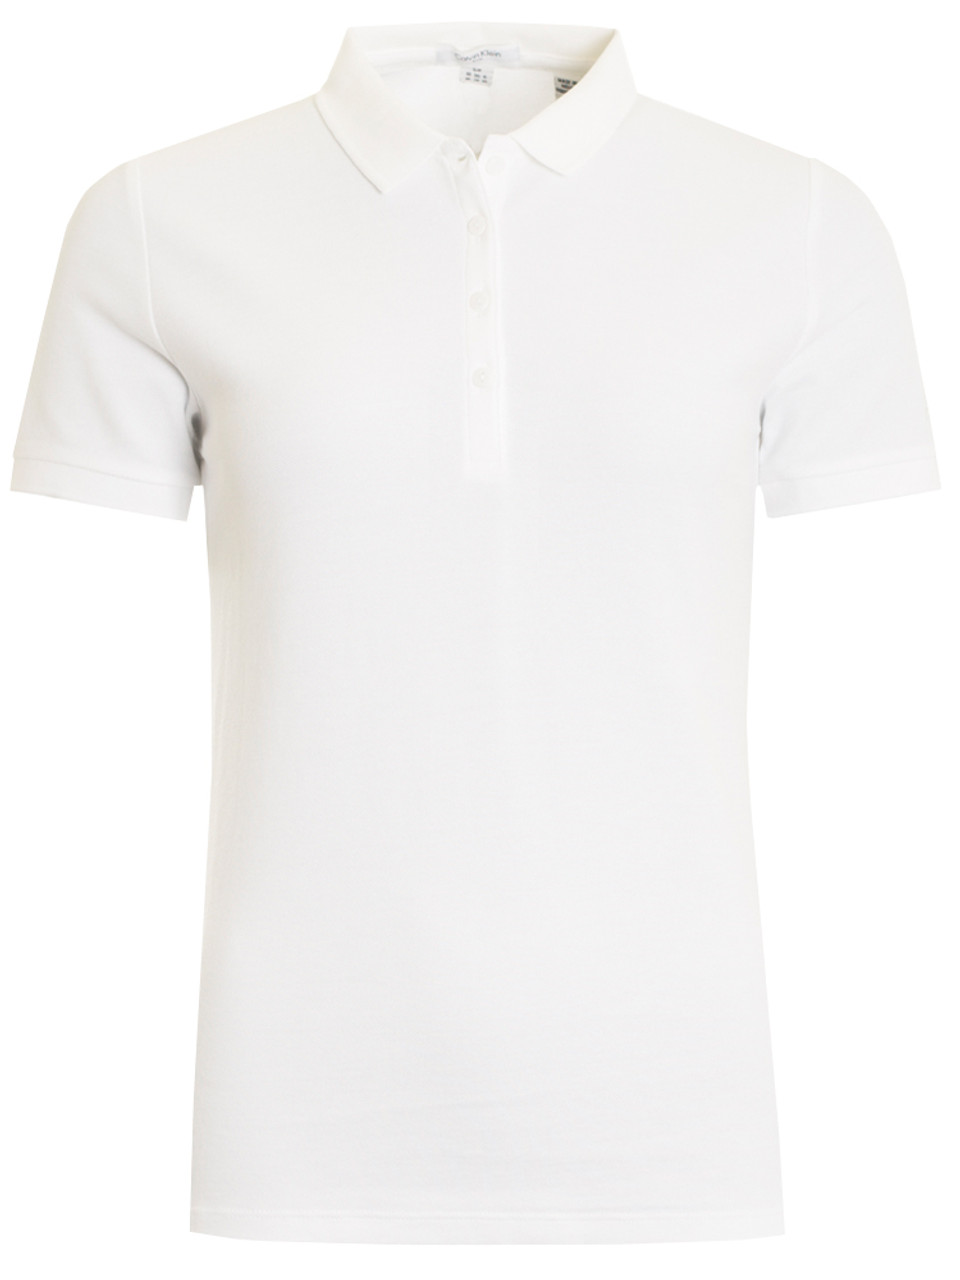 725540b1f76ee Calvin Klein Ladies Cotton Blend Polo - White - Ladies For Sale ...